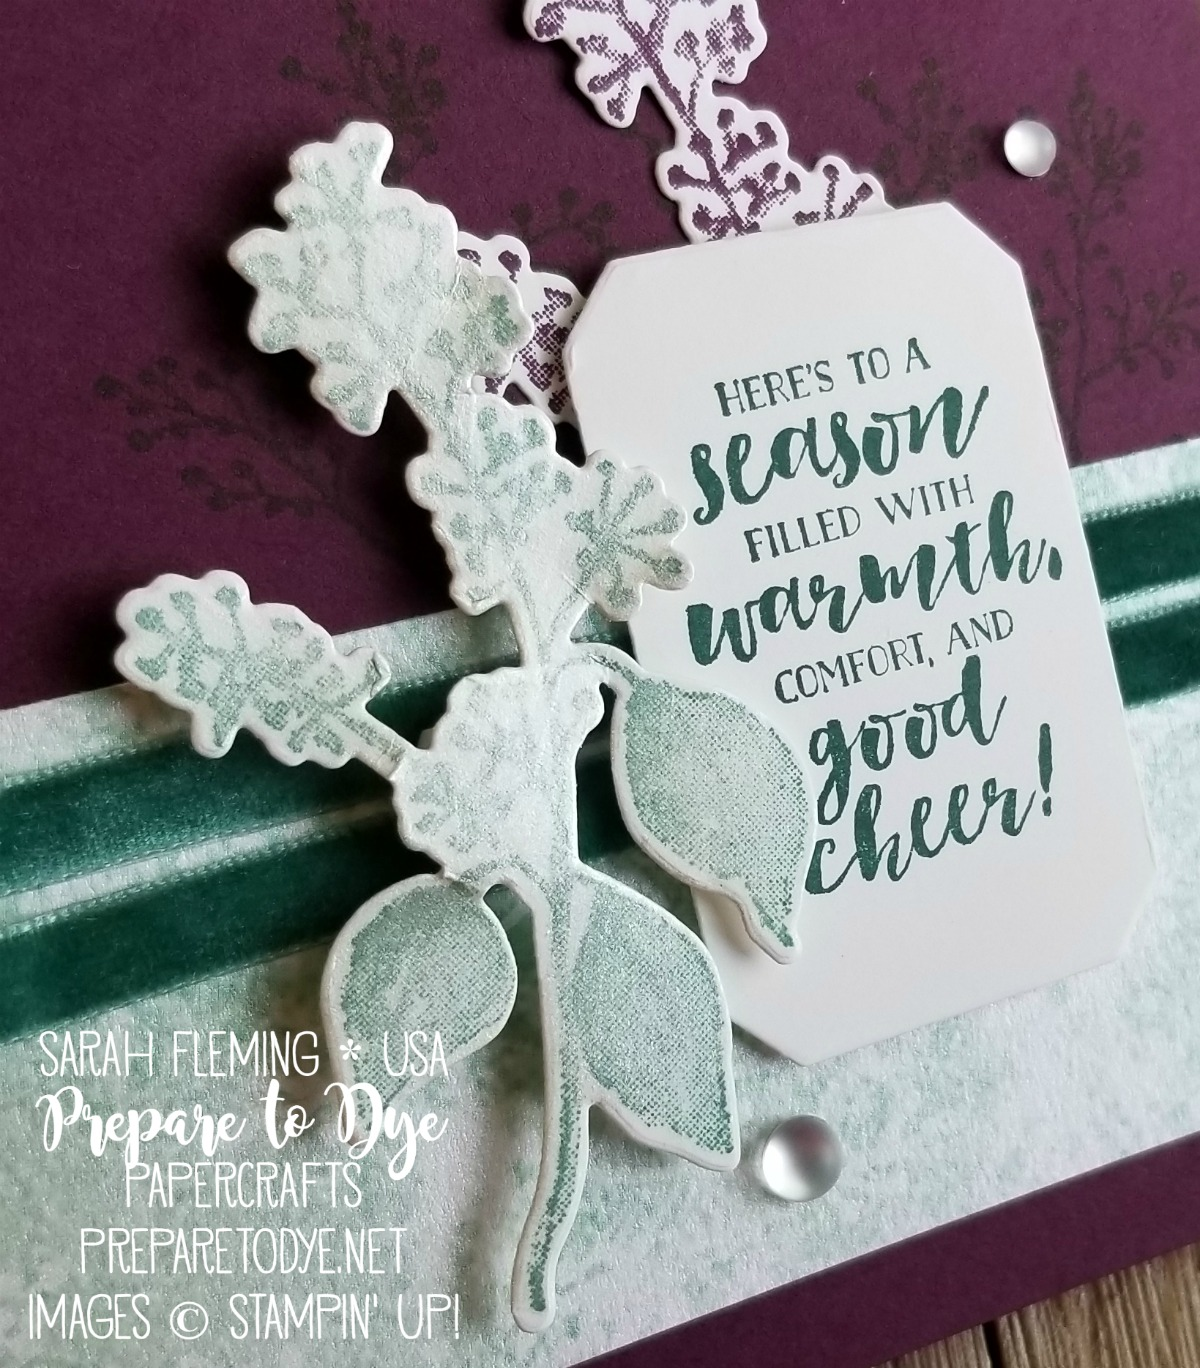 Stampin' Up! 2018 Holiday Catalog Sneak Peek - handmade holiday Christmas card using the Frosted Floral Suite - First Frost bundle with Frosted Bouquet framelits - Sarah Fleming - Prepare to Dye Papercrafts